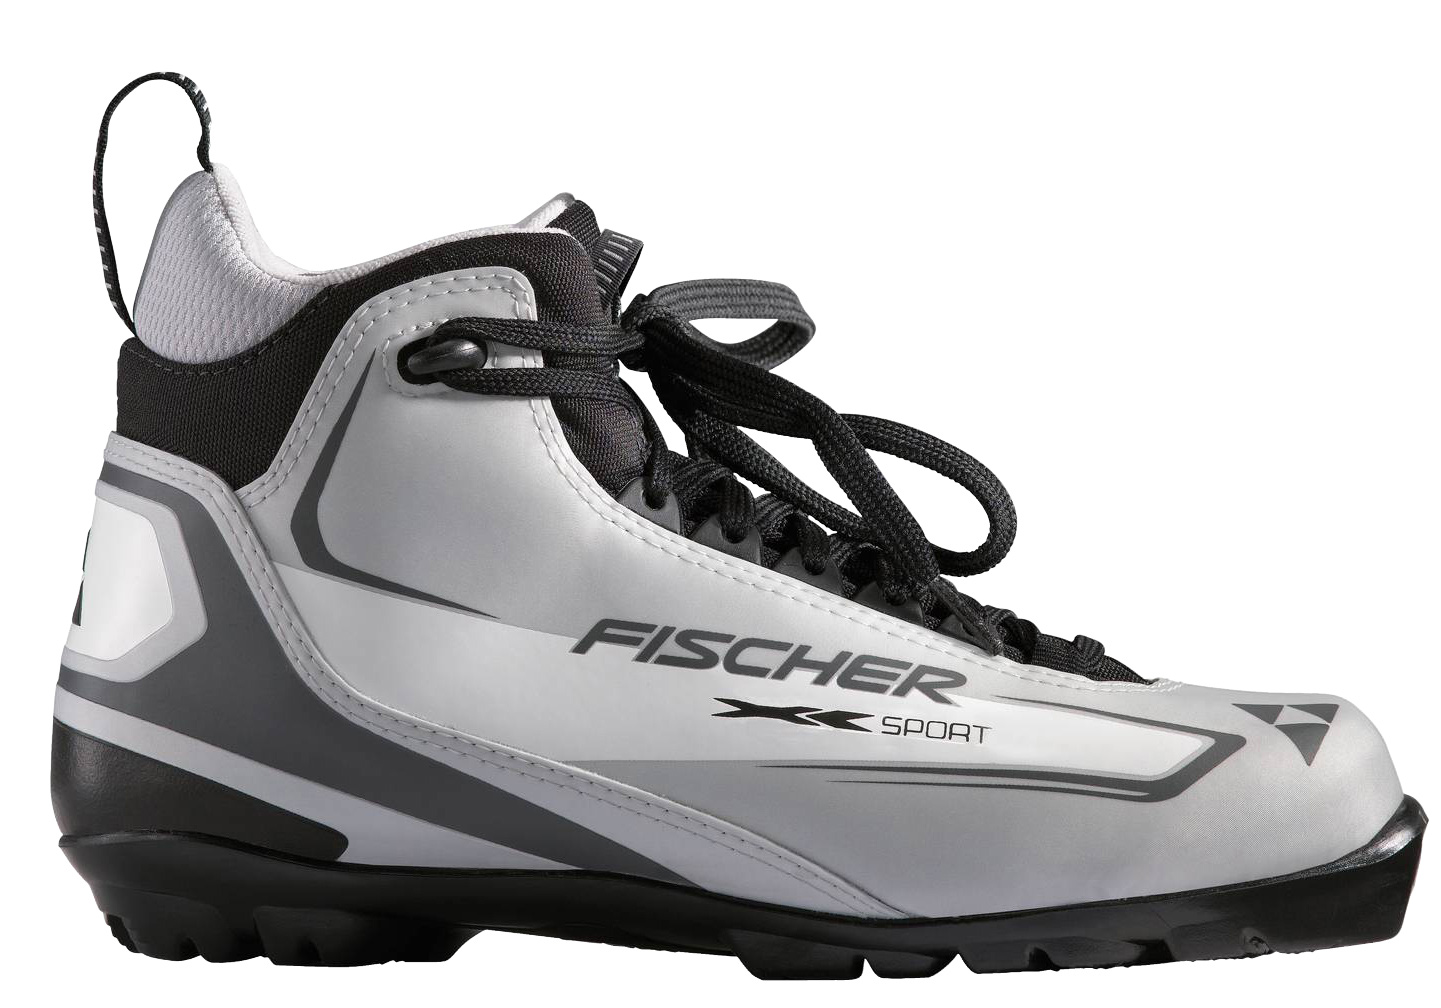 Ski Ingenious concept for adventurous tours. The Fischer XC Sport Cross Country Ski Boot model features medium sole stiffness, practical pull-on loop, precise fitting and easy lacing.Key Features of the Fischer XC Sport Cross Country Ski Boots: Sole: T3 Bootflex: Soft Sport Fit Concept Easy Entry Loops - $51.95